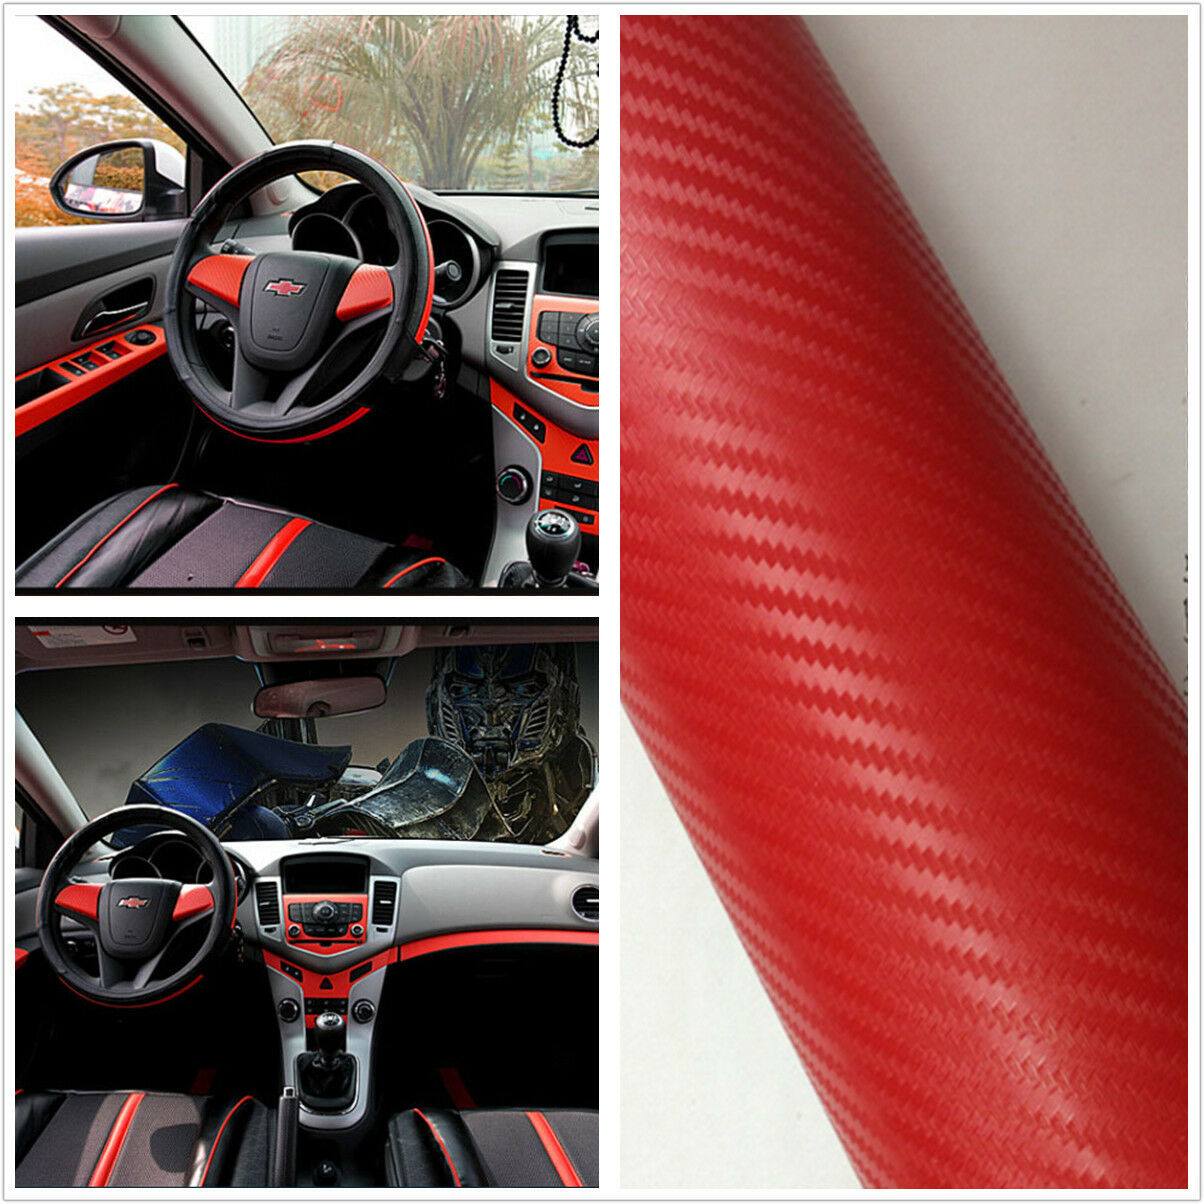 3d suv car accessories interior panel red carbon fiber vinyl wrap sticker ebay. Black Bedroom Furniture Sets. Home Design Ideas